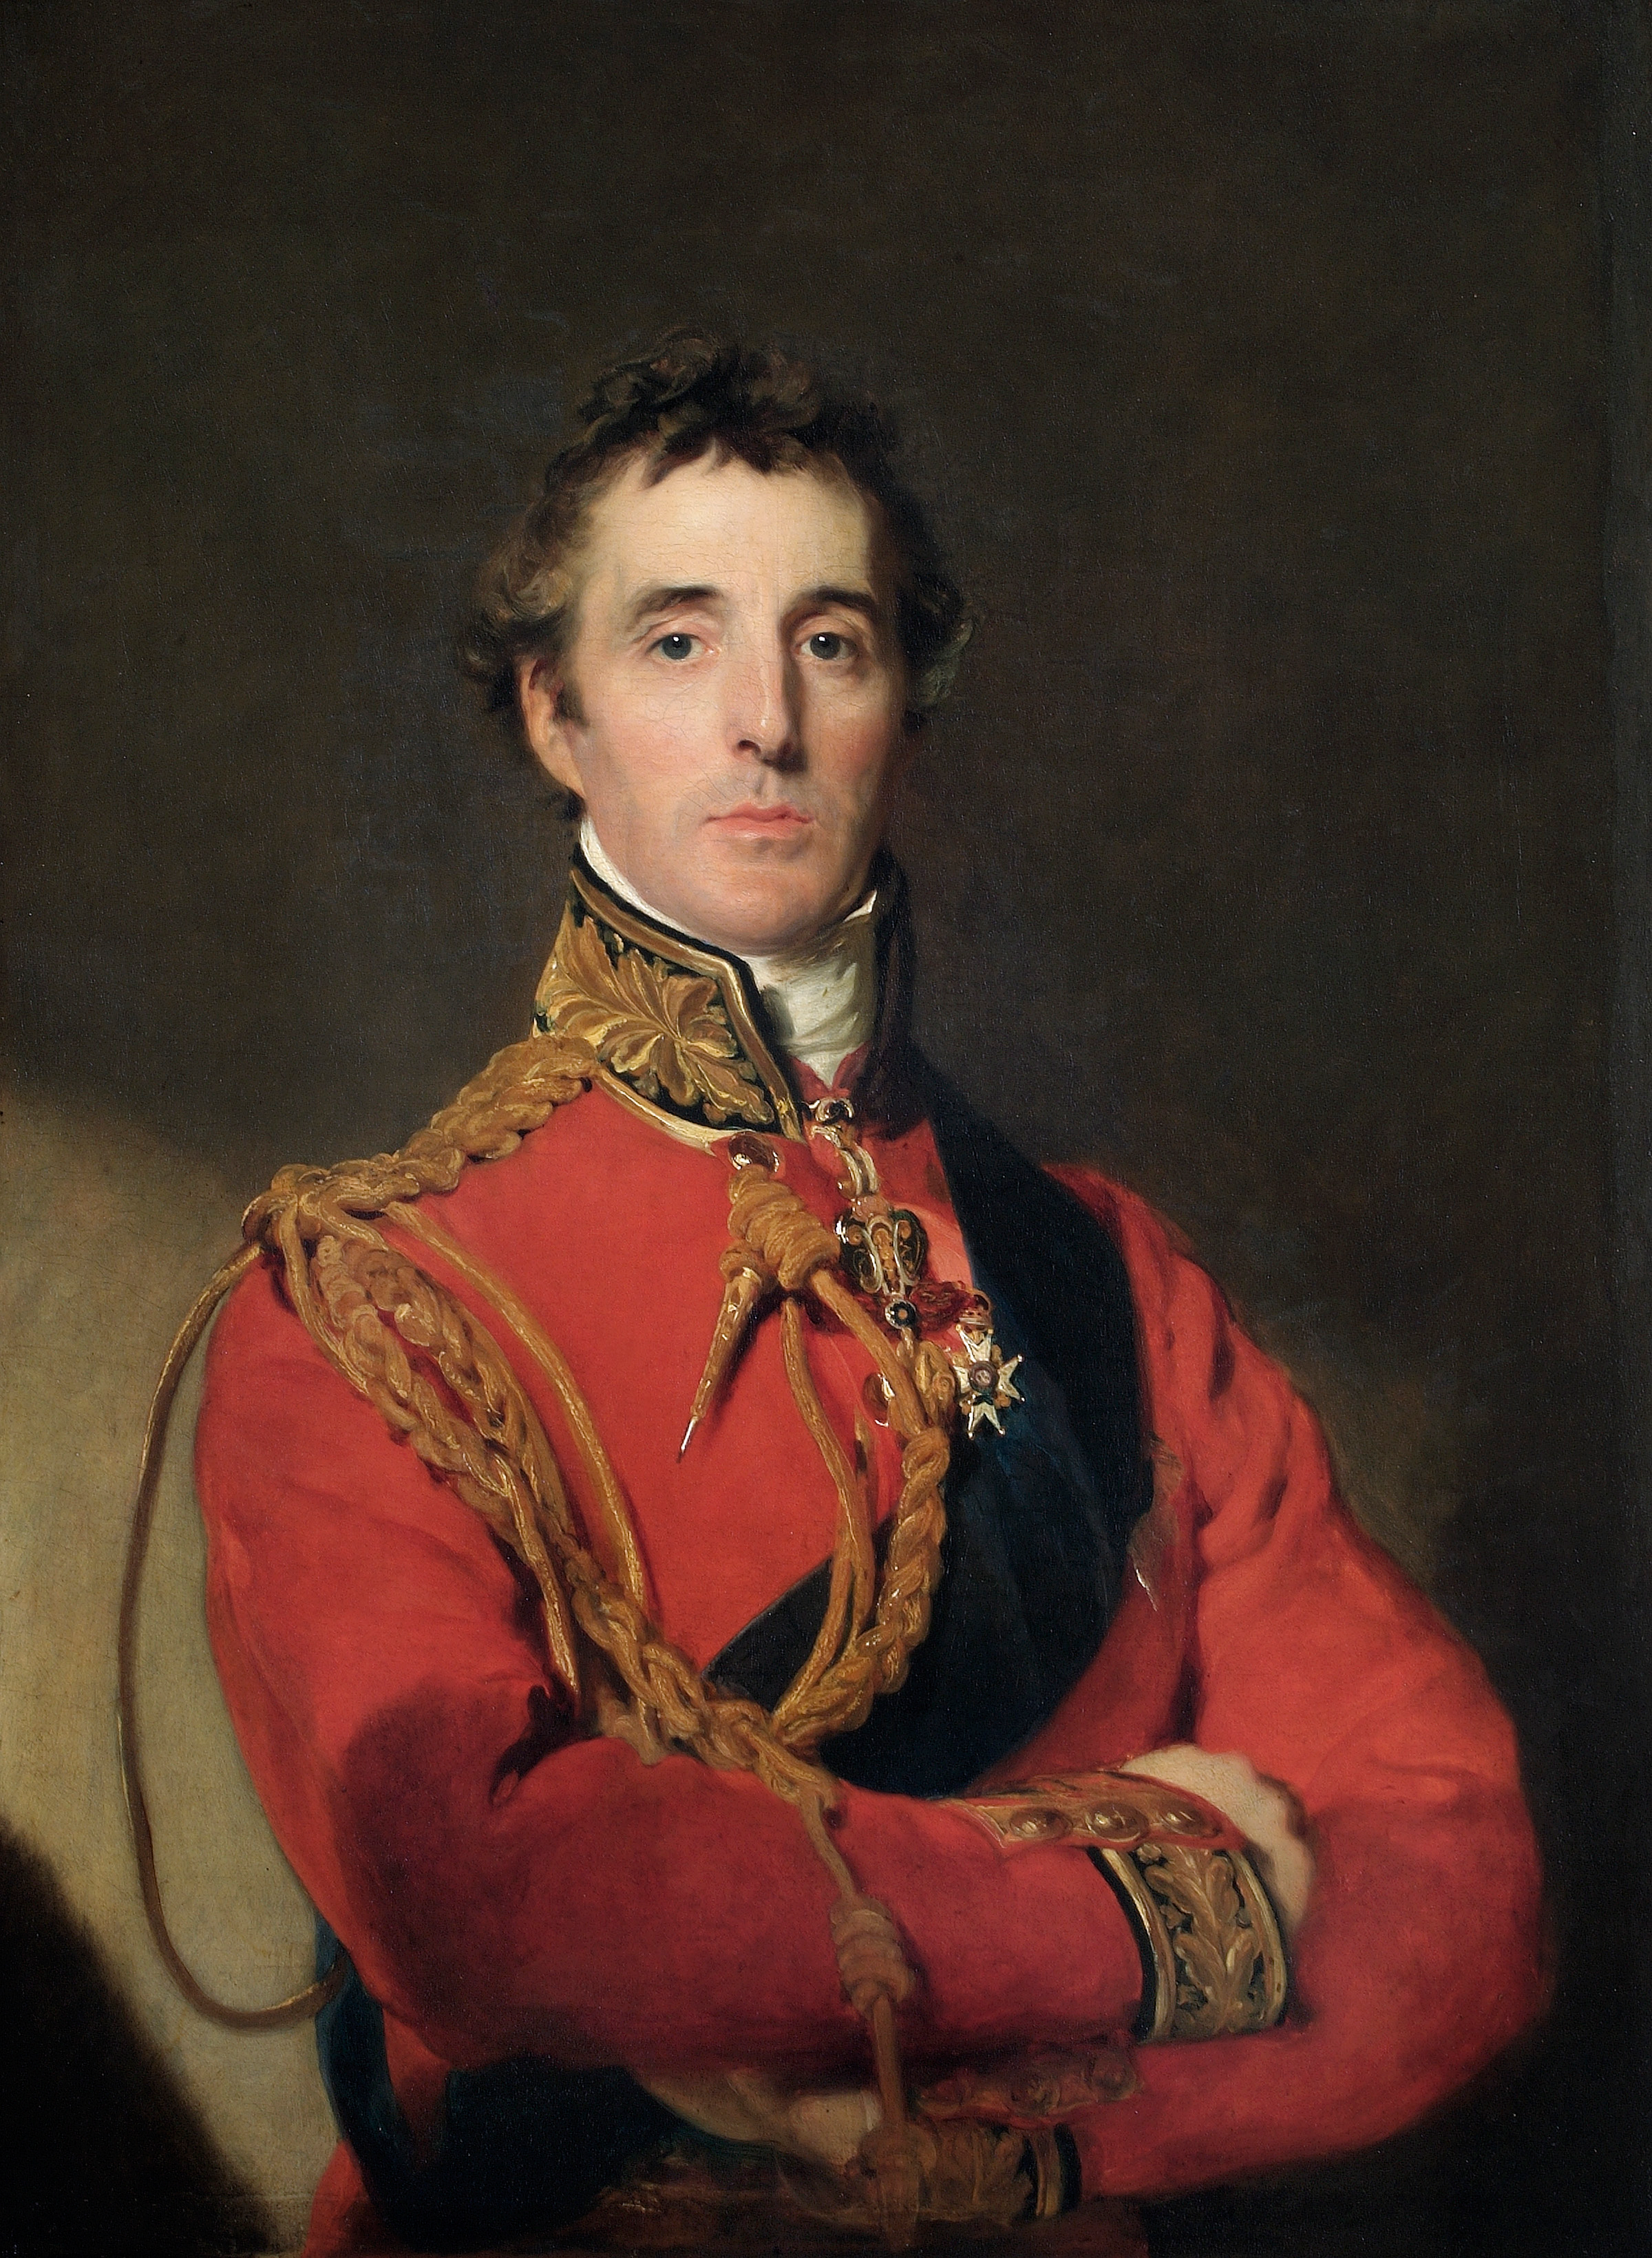 Portrait of Sir Arthur Wellesley, 1st Duke of Wellington